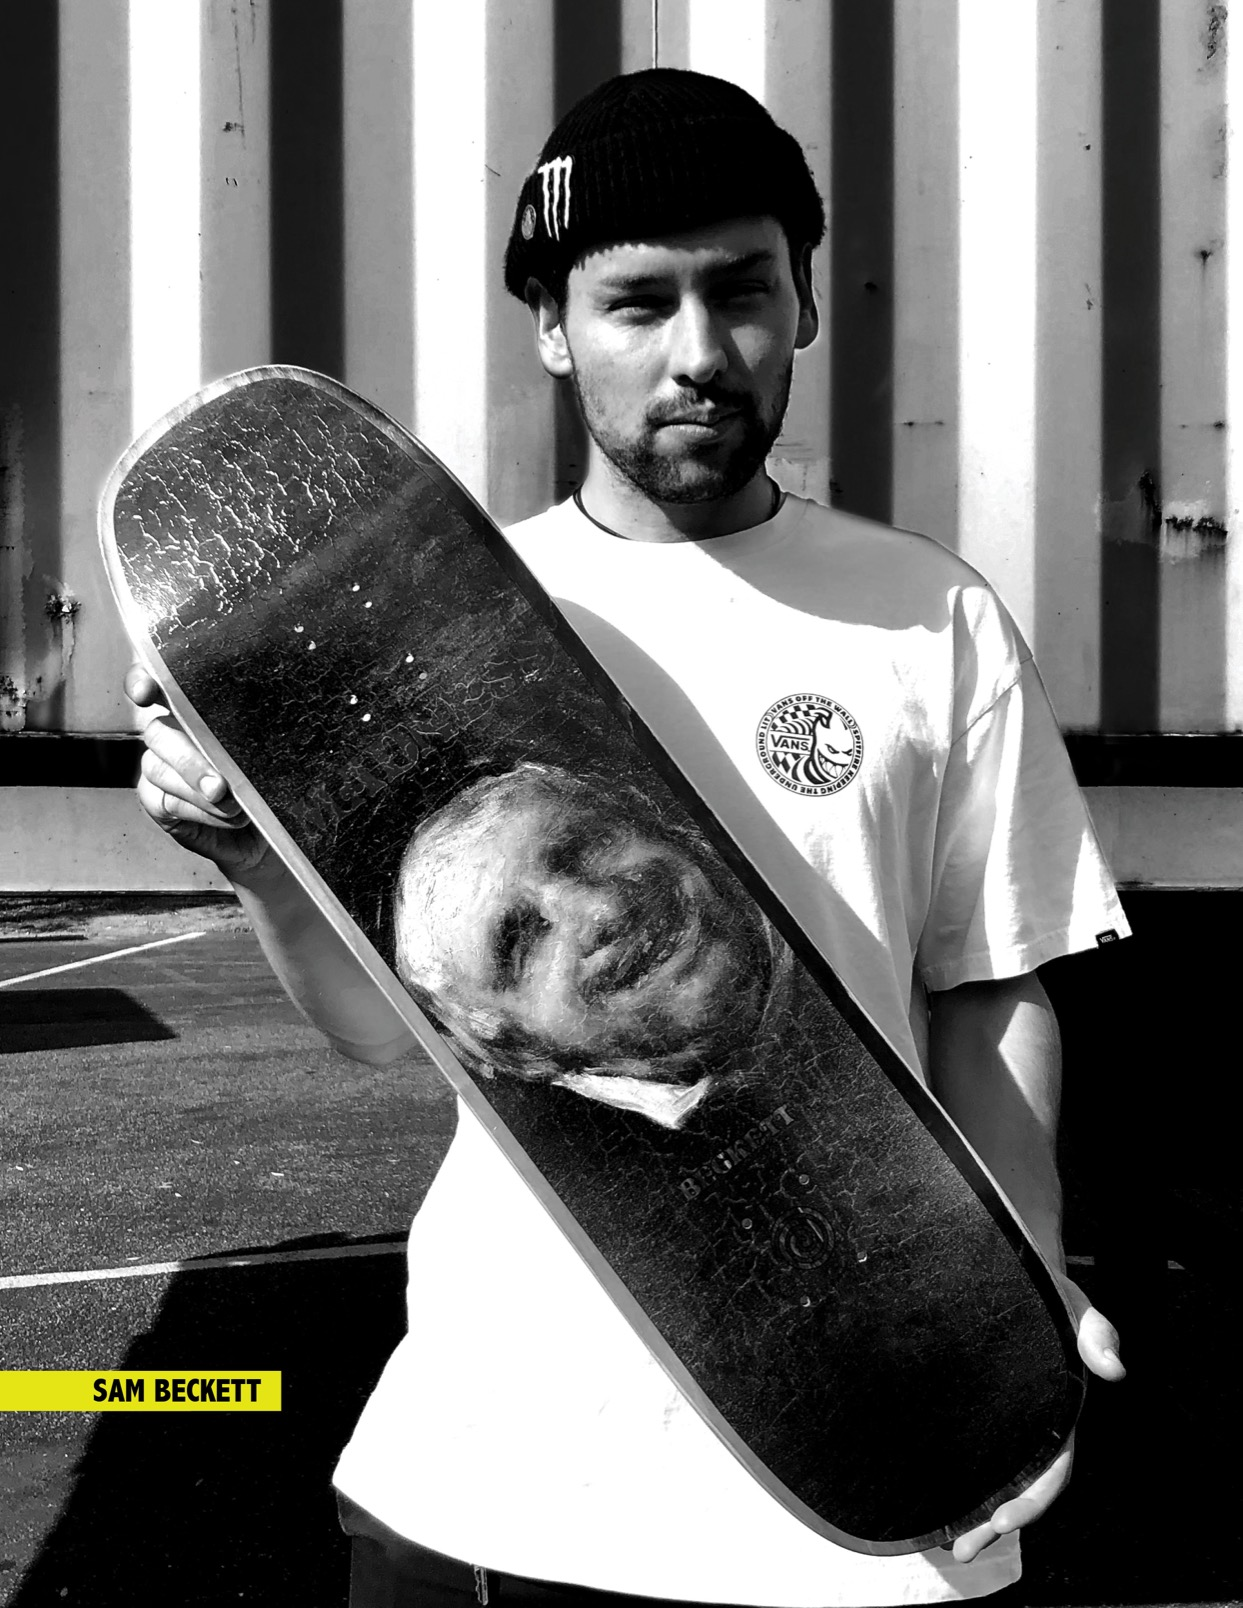 Madness_Skateboards_Sam_Beckett_Paquete_2.jpg